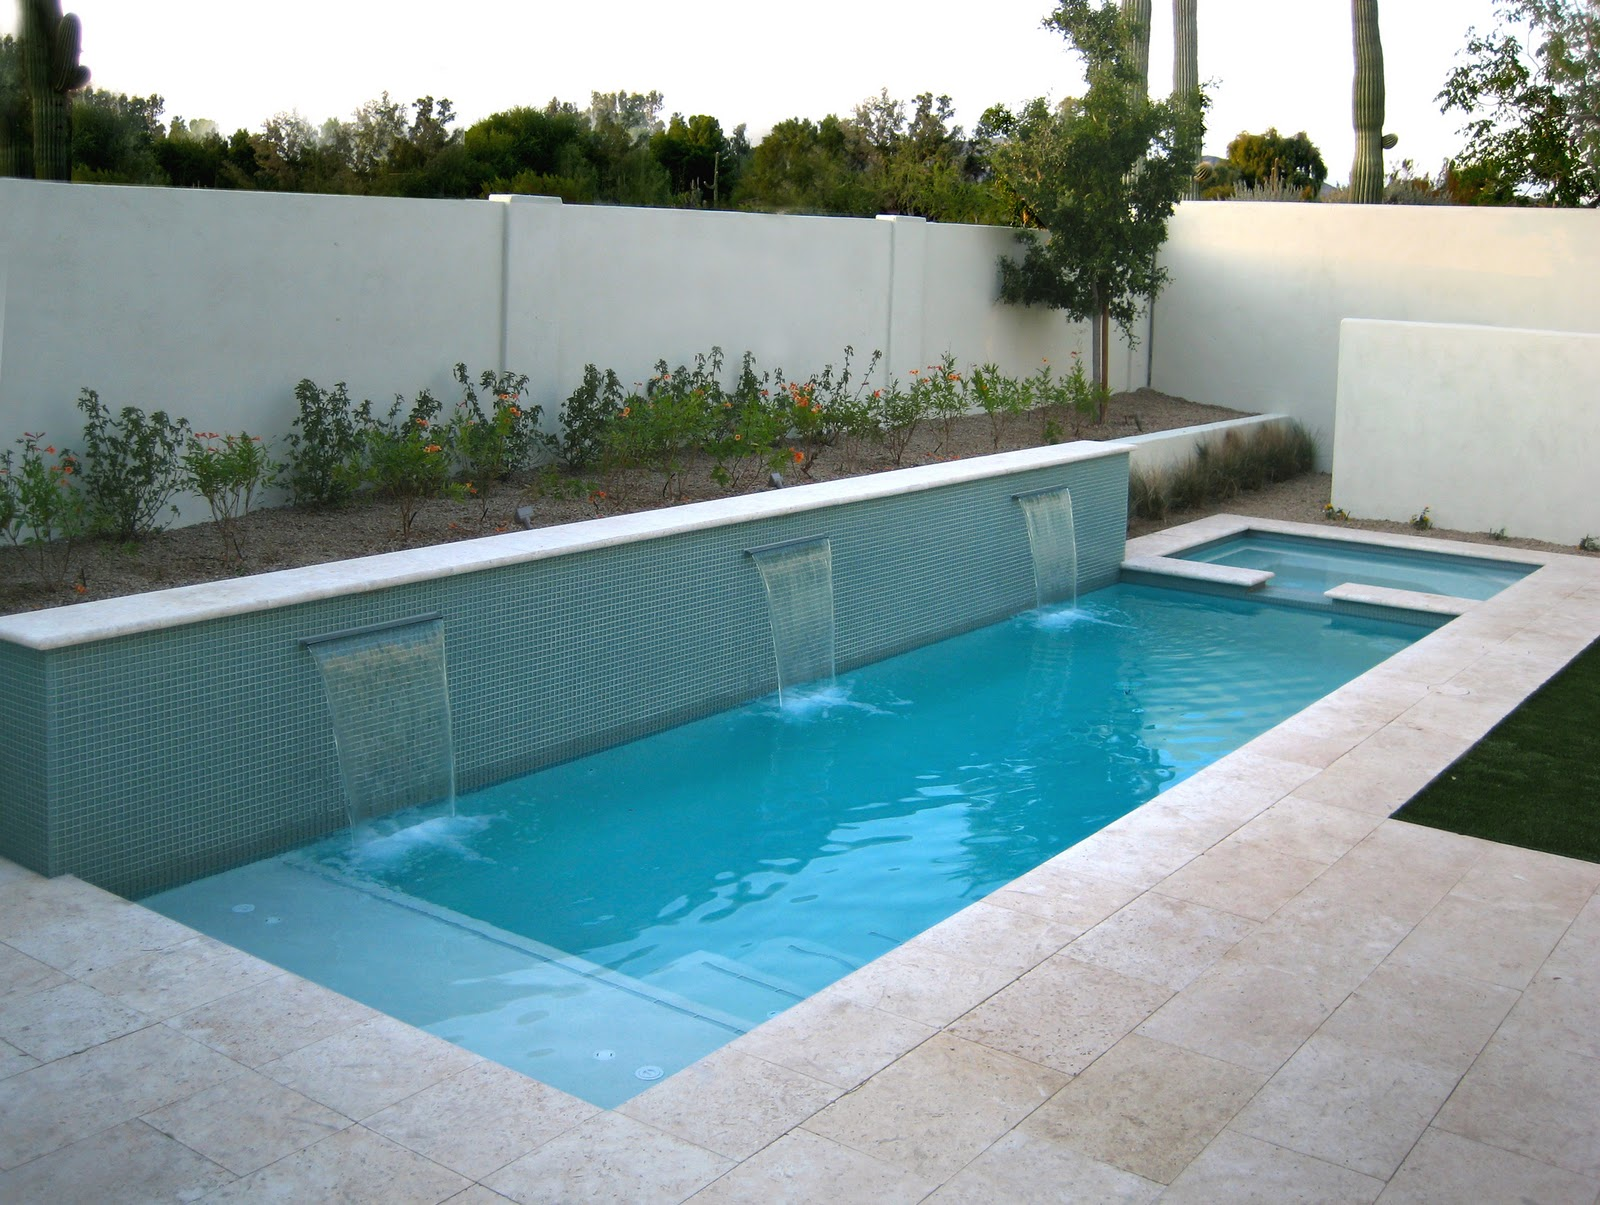 25 fabulous small backyard designs with swimming pool for Pool design ideas